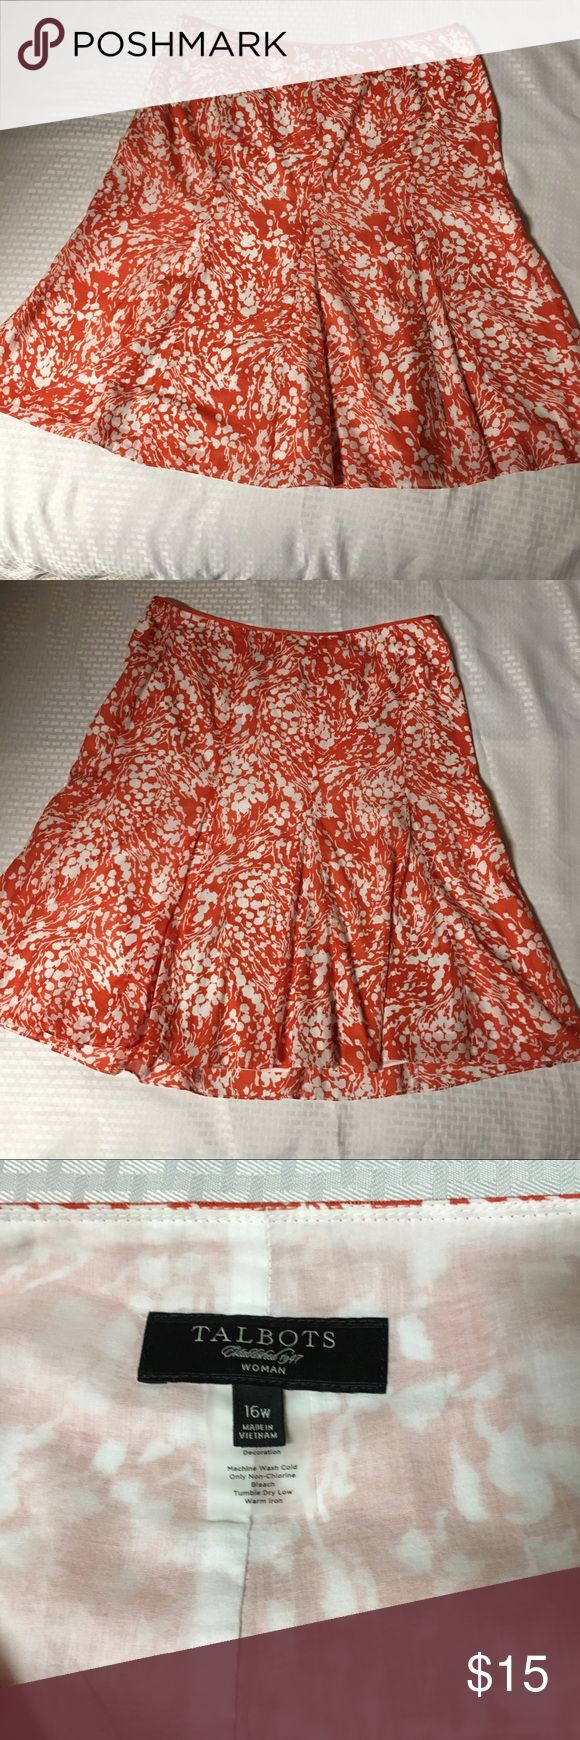 """Talbots Women's Skirt Size 16 W Orange-white Size 16W  Floral skirt  Orange and white colored  Length-28.5  Waist-40""""  Great Condition no stains or holes Talbots Skirts"""